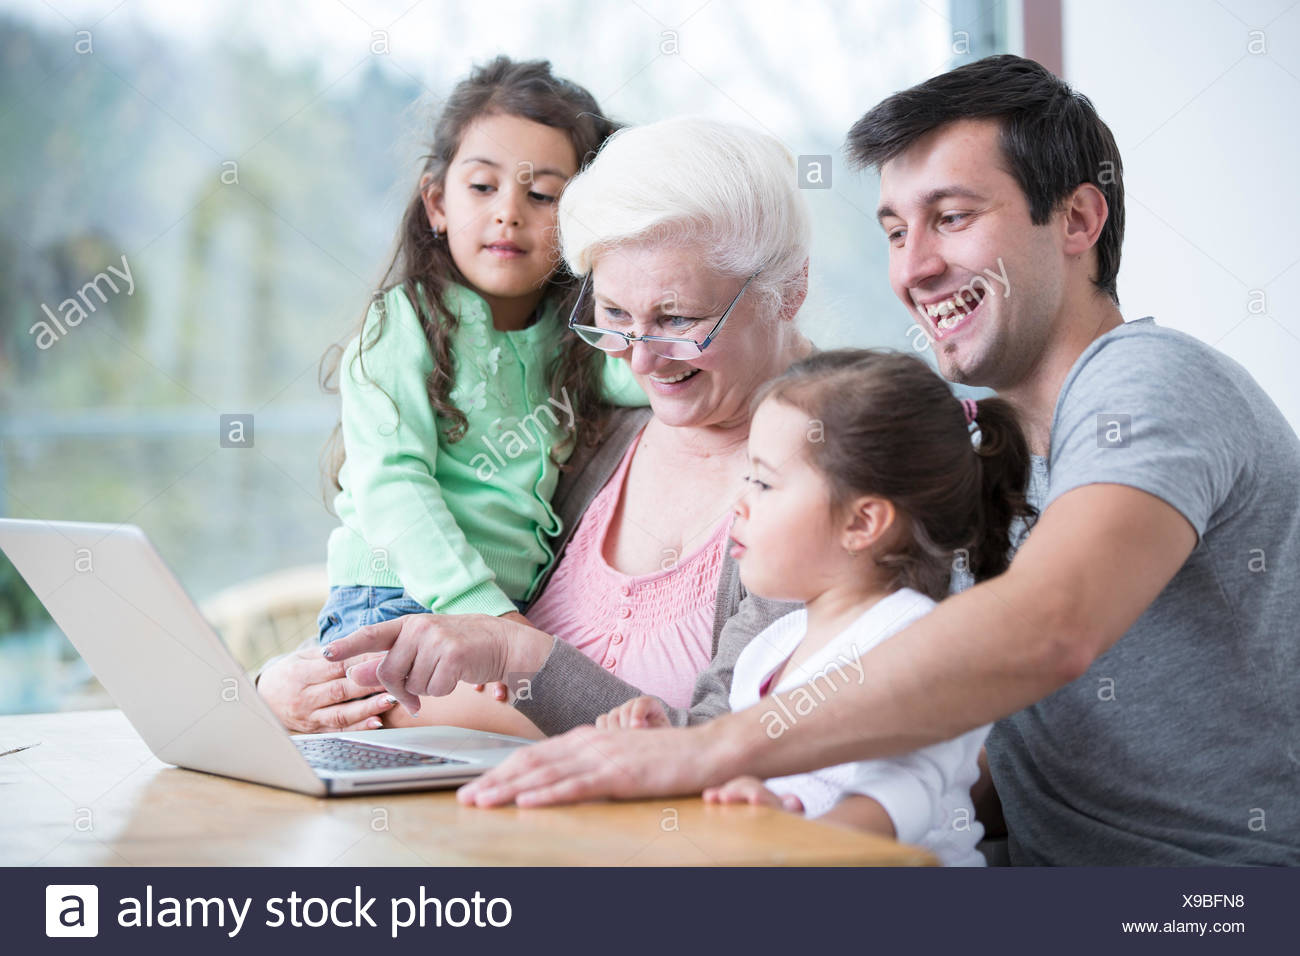 Happy three generation family using laptop at table in house - Stock Image